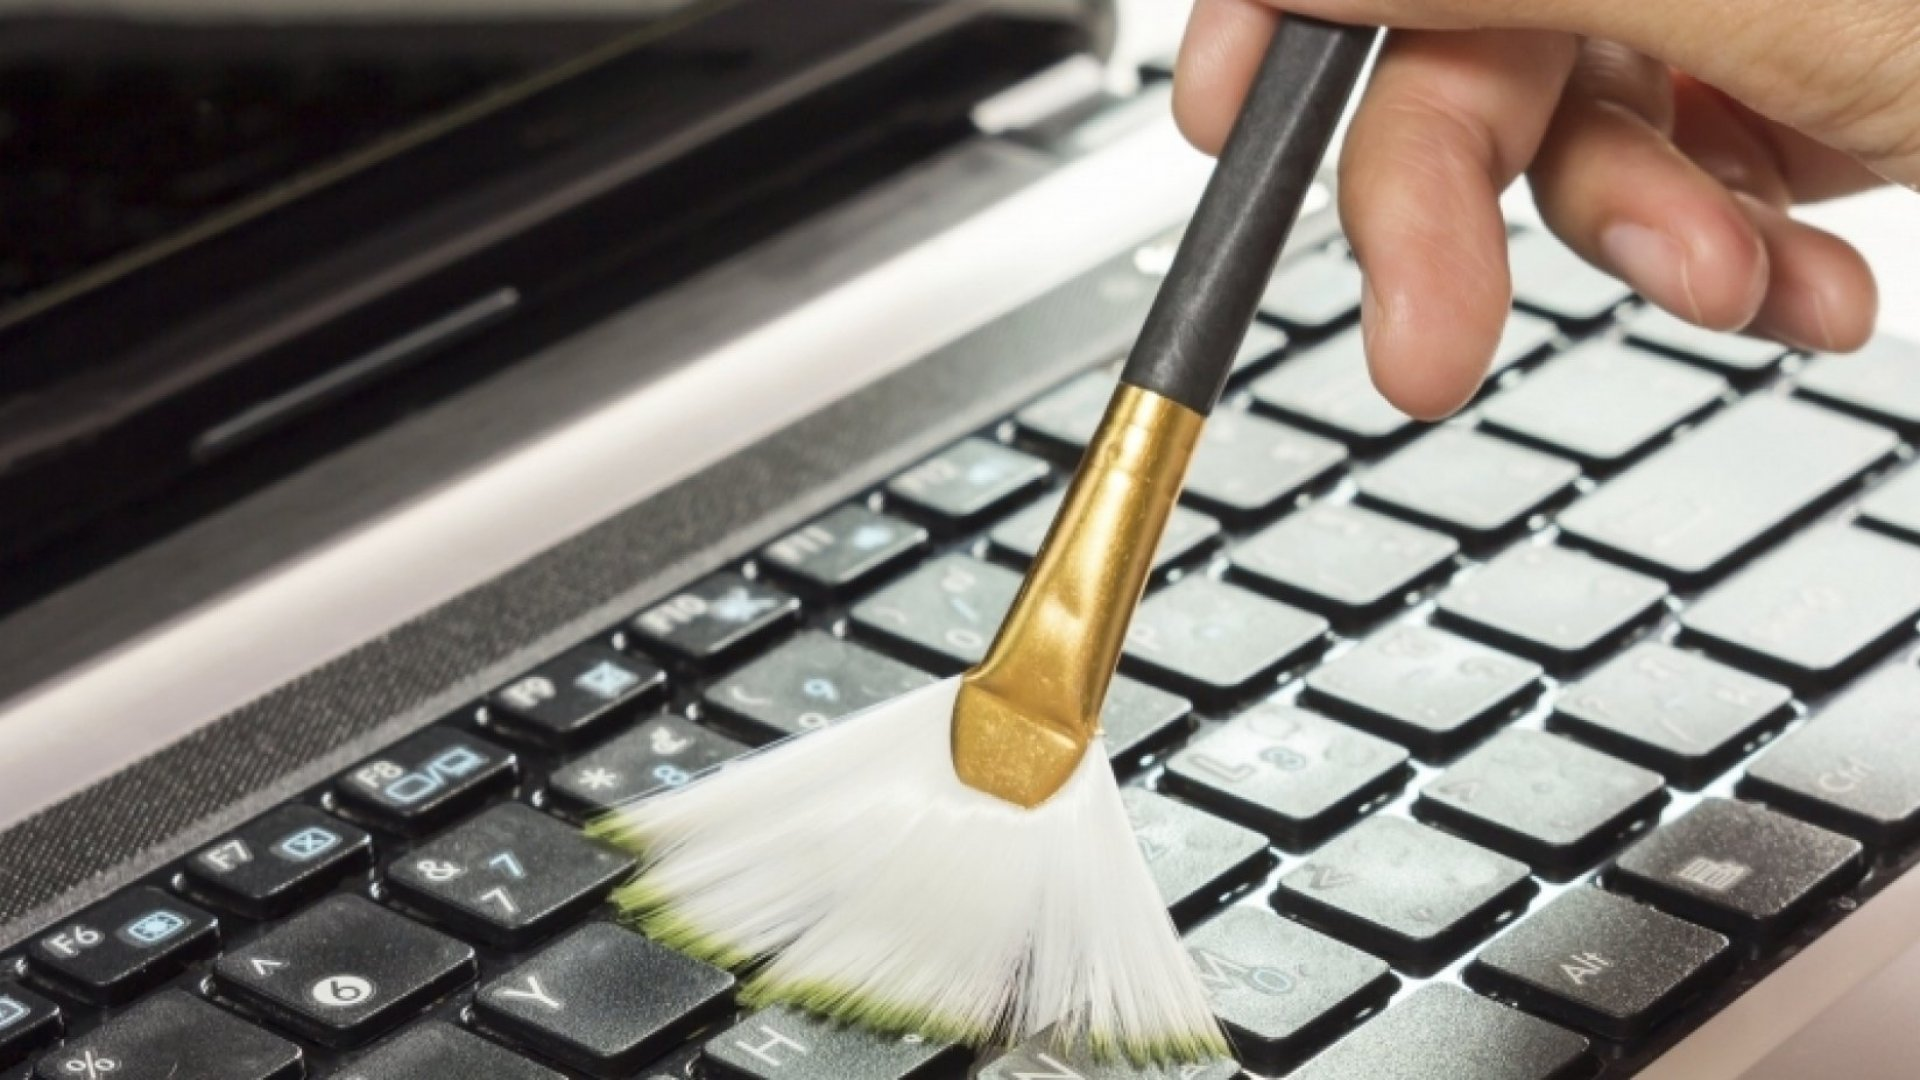 7 Smart Things to Do on Clean Out Your Computer Day